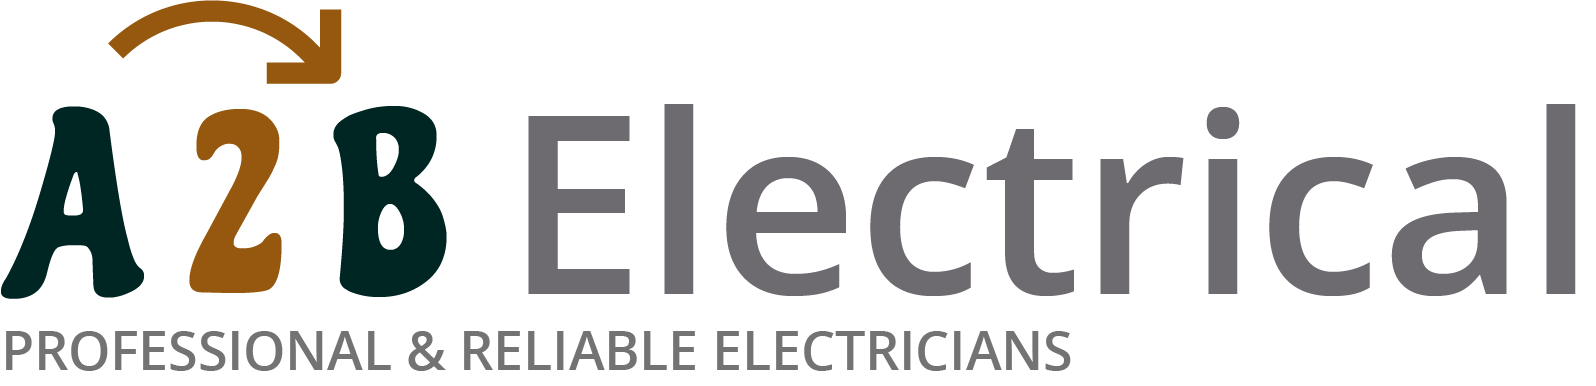 If you have electrical wiring problems in Rainham, we can provide an electrician to have a look for you.